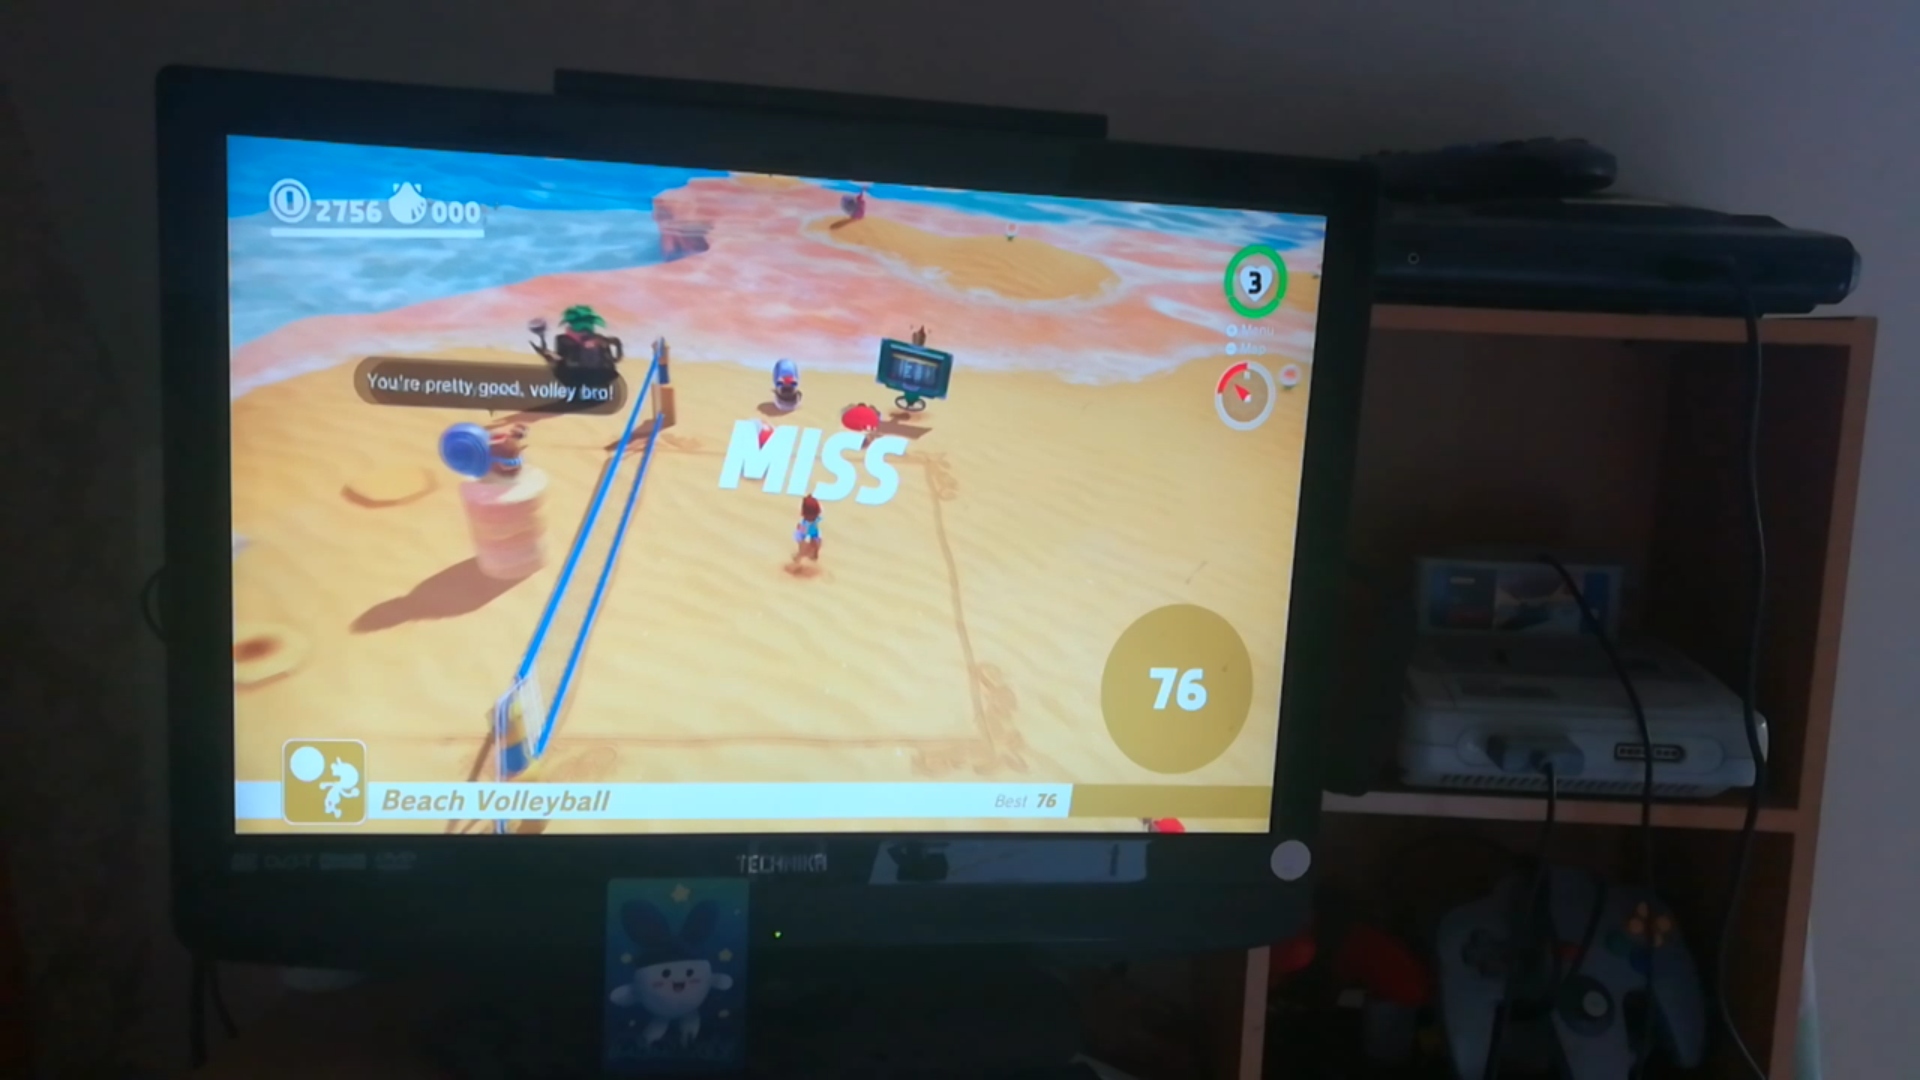 Super Mario Odyssey: Beach Volleyball 76 points